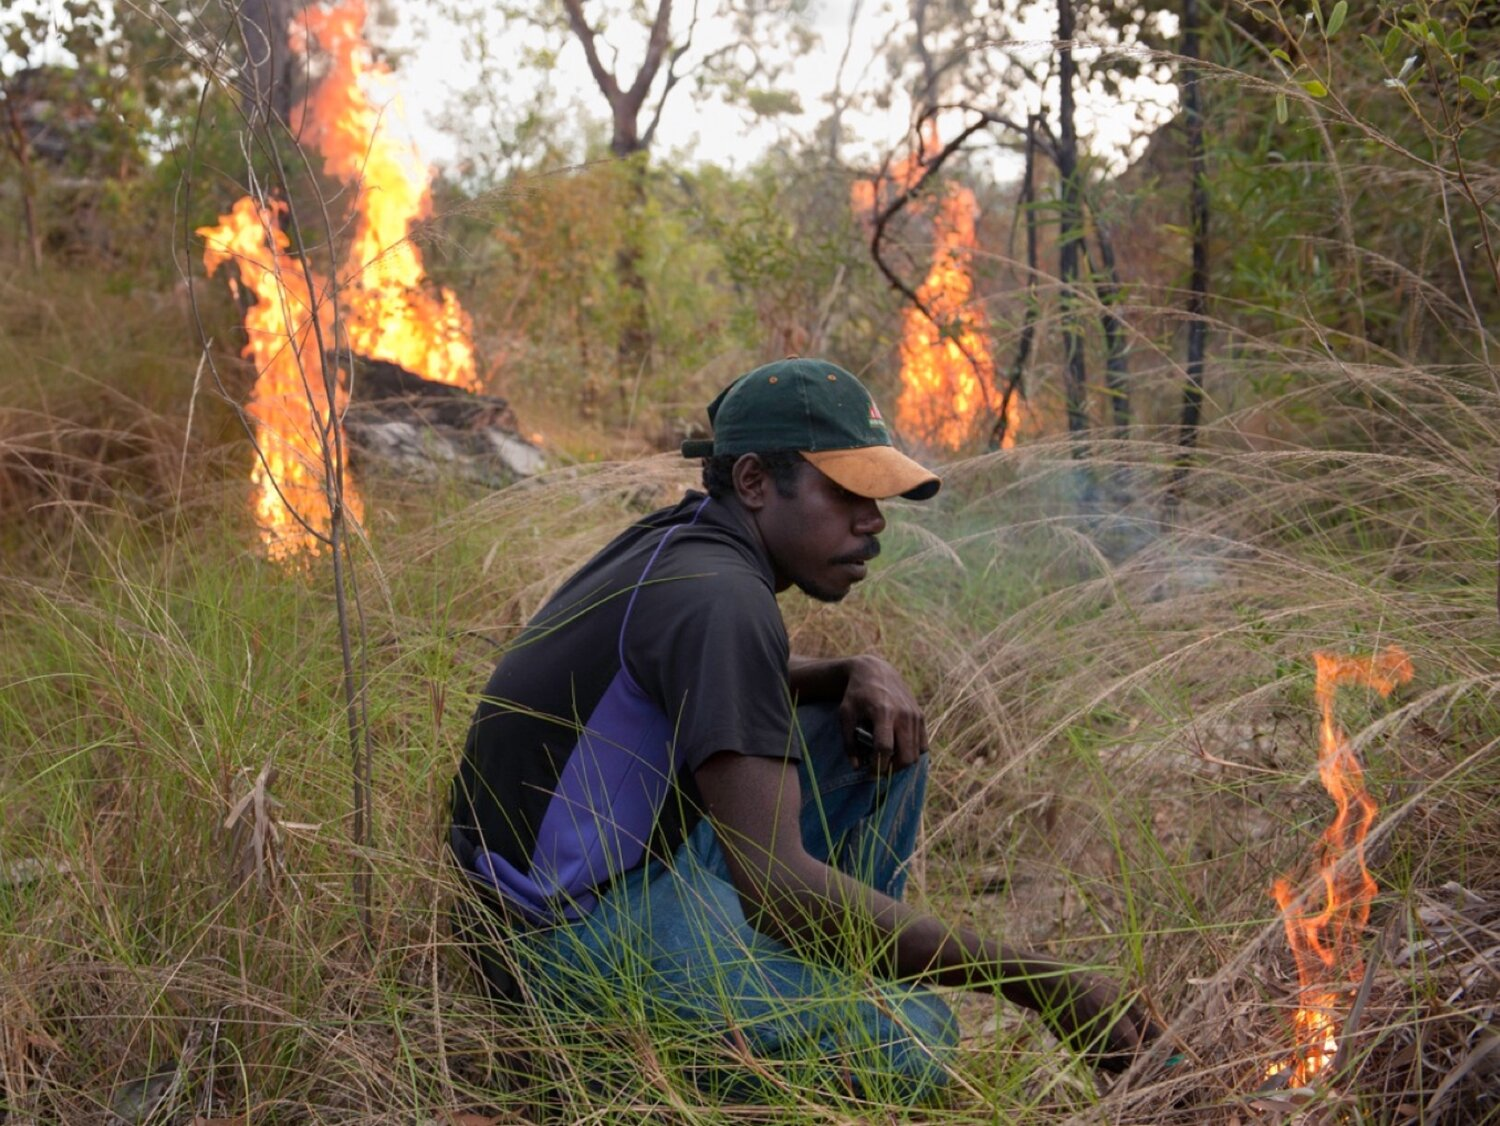 Drawing from Australian experience. - Combining traditional fire management practices with innovative scientific methodologies and a system of verification has led to valuable economic, social and cultural benefits for remote Indigenous communities in northern Australia. The success of the Australian experience inspired the ISFMI. The vision is to support Indigenous communities around the world to reignite their own fire management traditions.